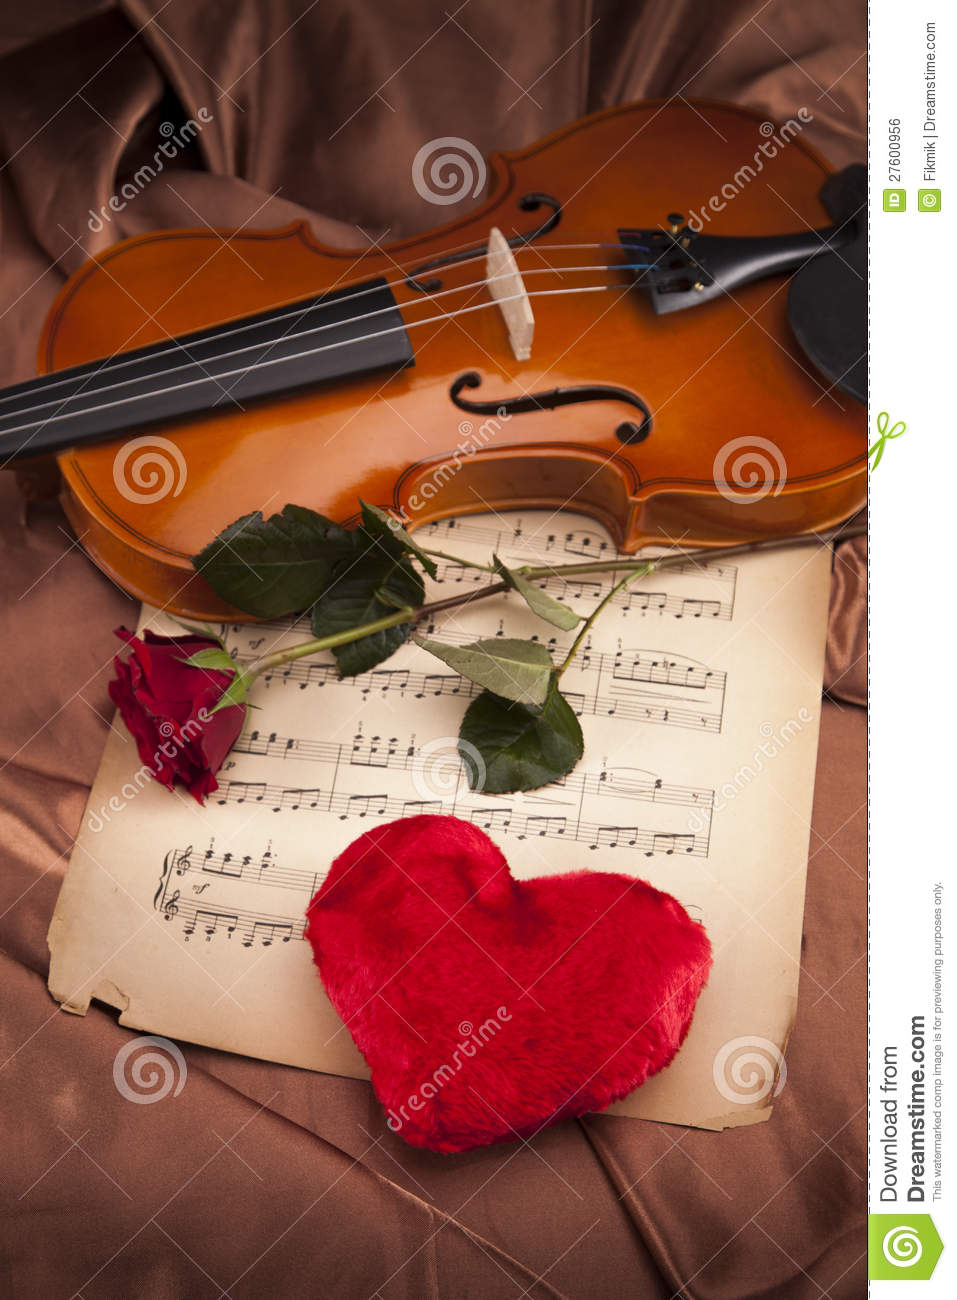 3d Love Red Heart Wallpaper Beautiful Rose Heart And Violin Royalty Free Stock Image